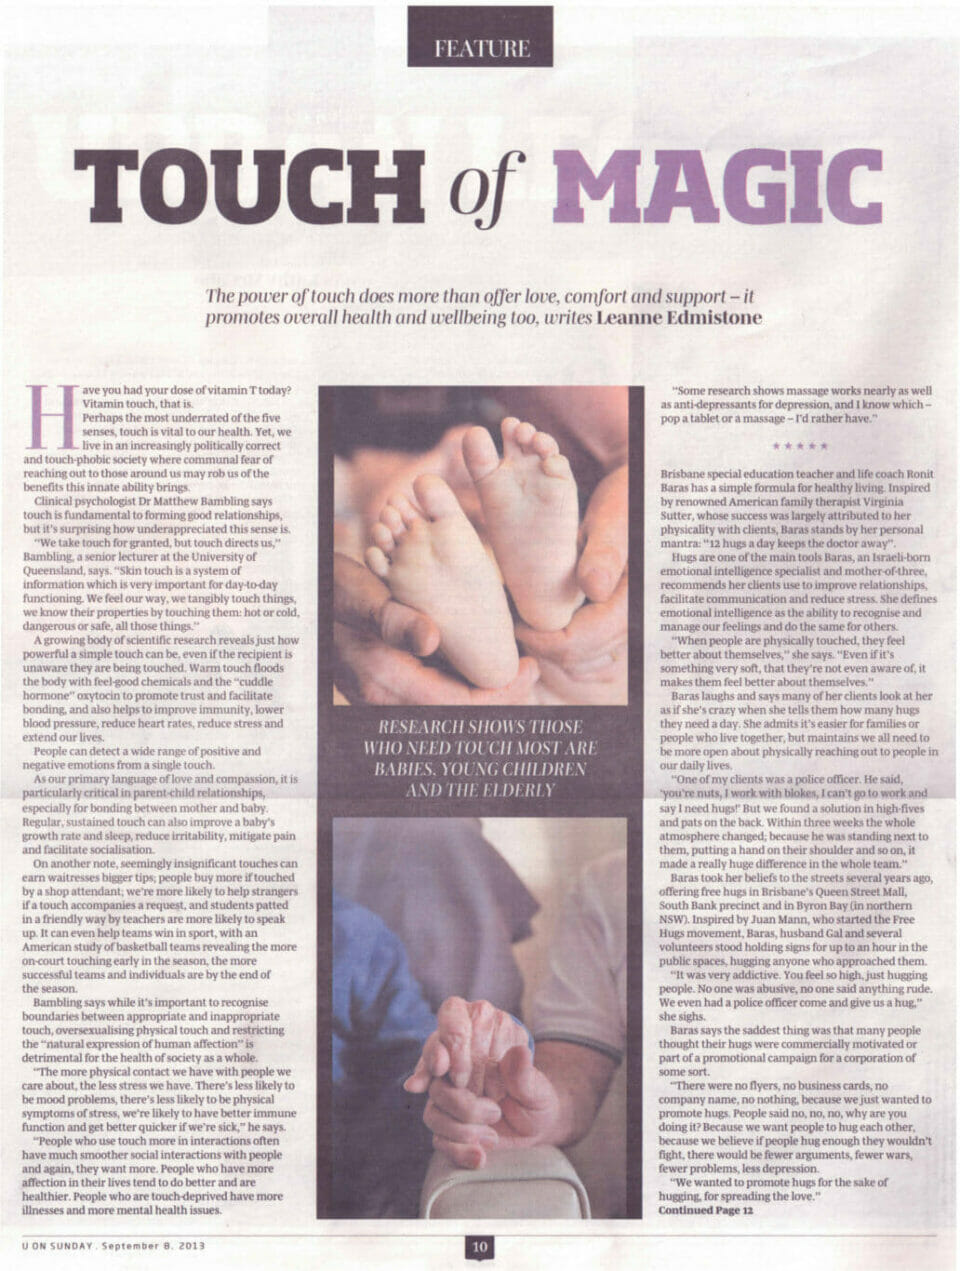 Article on the importance of touch